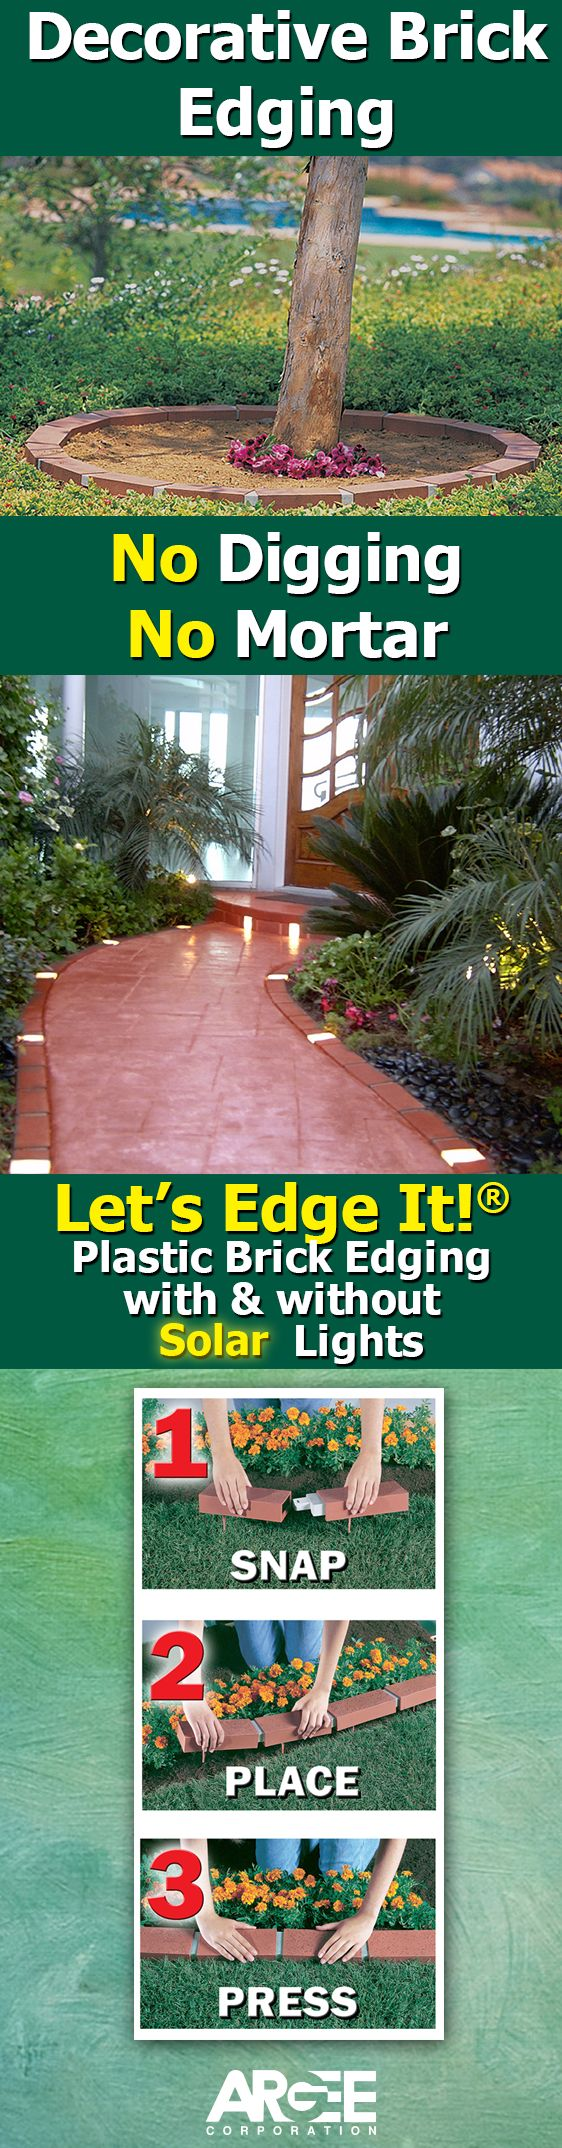 Let's Edge It!® Decorative Plastic Brick Edging with Solar Lights installs in minutes. Just snap together and press into ground.